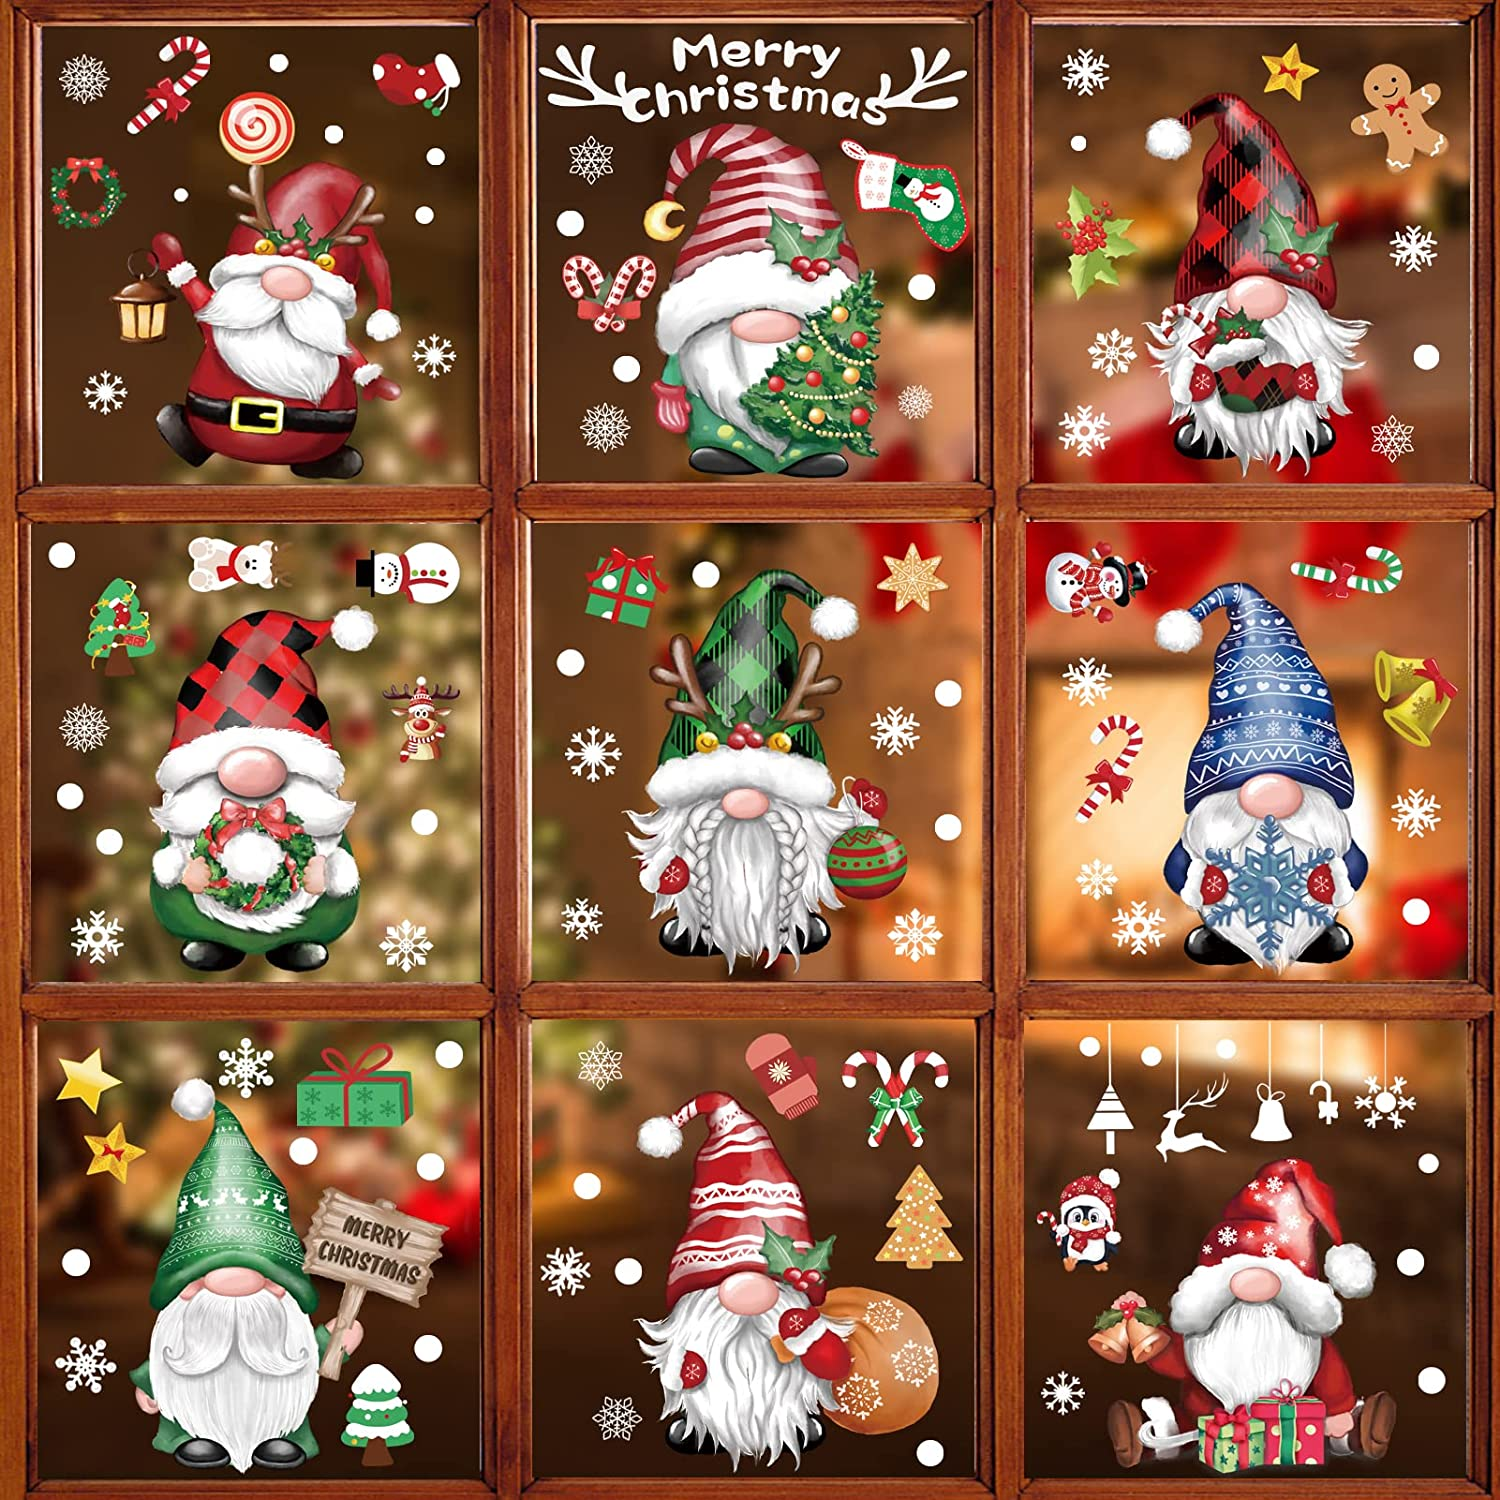 BORAMDO Christmas Window Clings 11 Sheets, Christmas Gnome Snowflake Window Decals Stickers, Removable Christmas Window Decorations for Glass Windows Xmas Holiday Home Office Decor 9 Styles